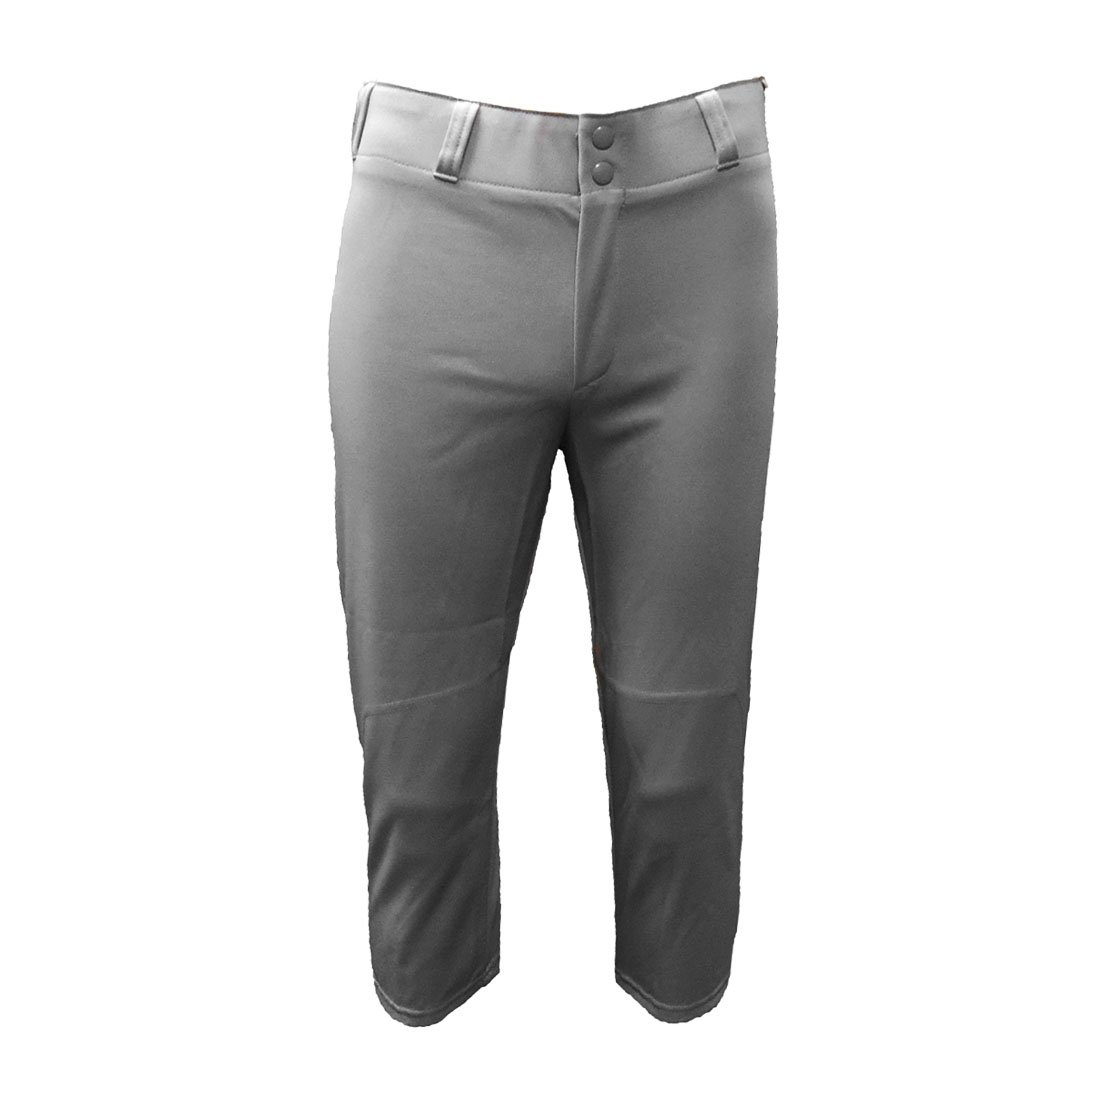 Majestic MLB Pro Style Youth Baseball Pants Grey)